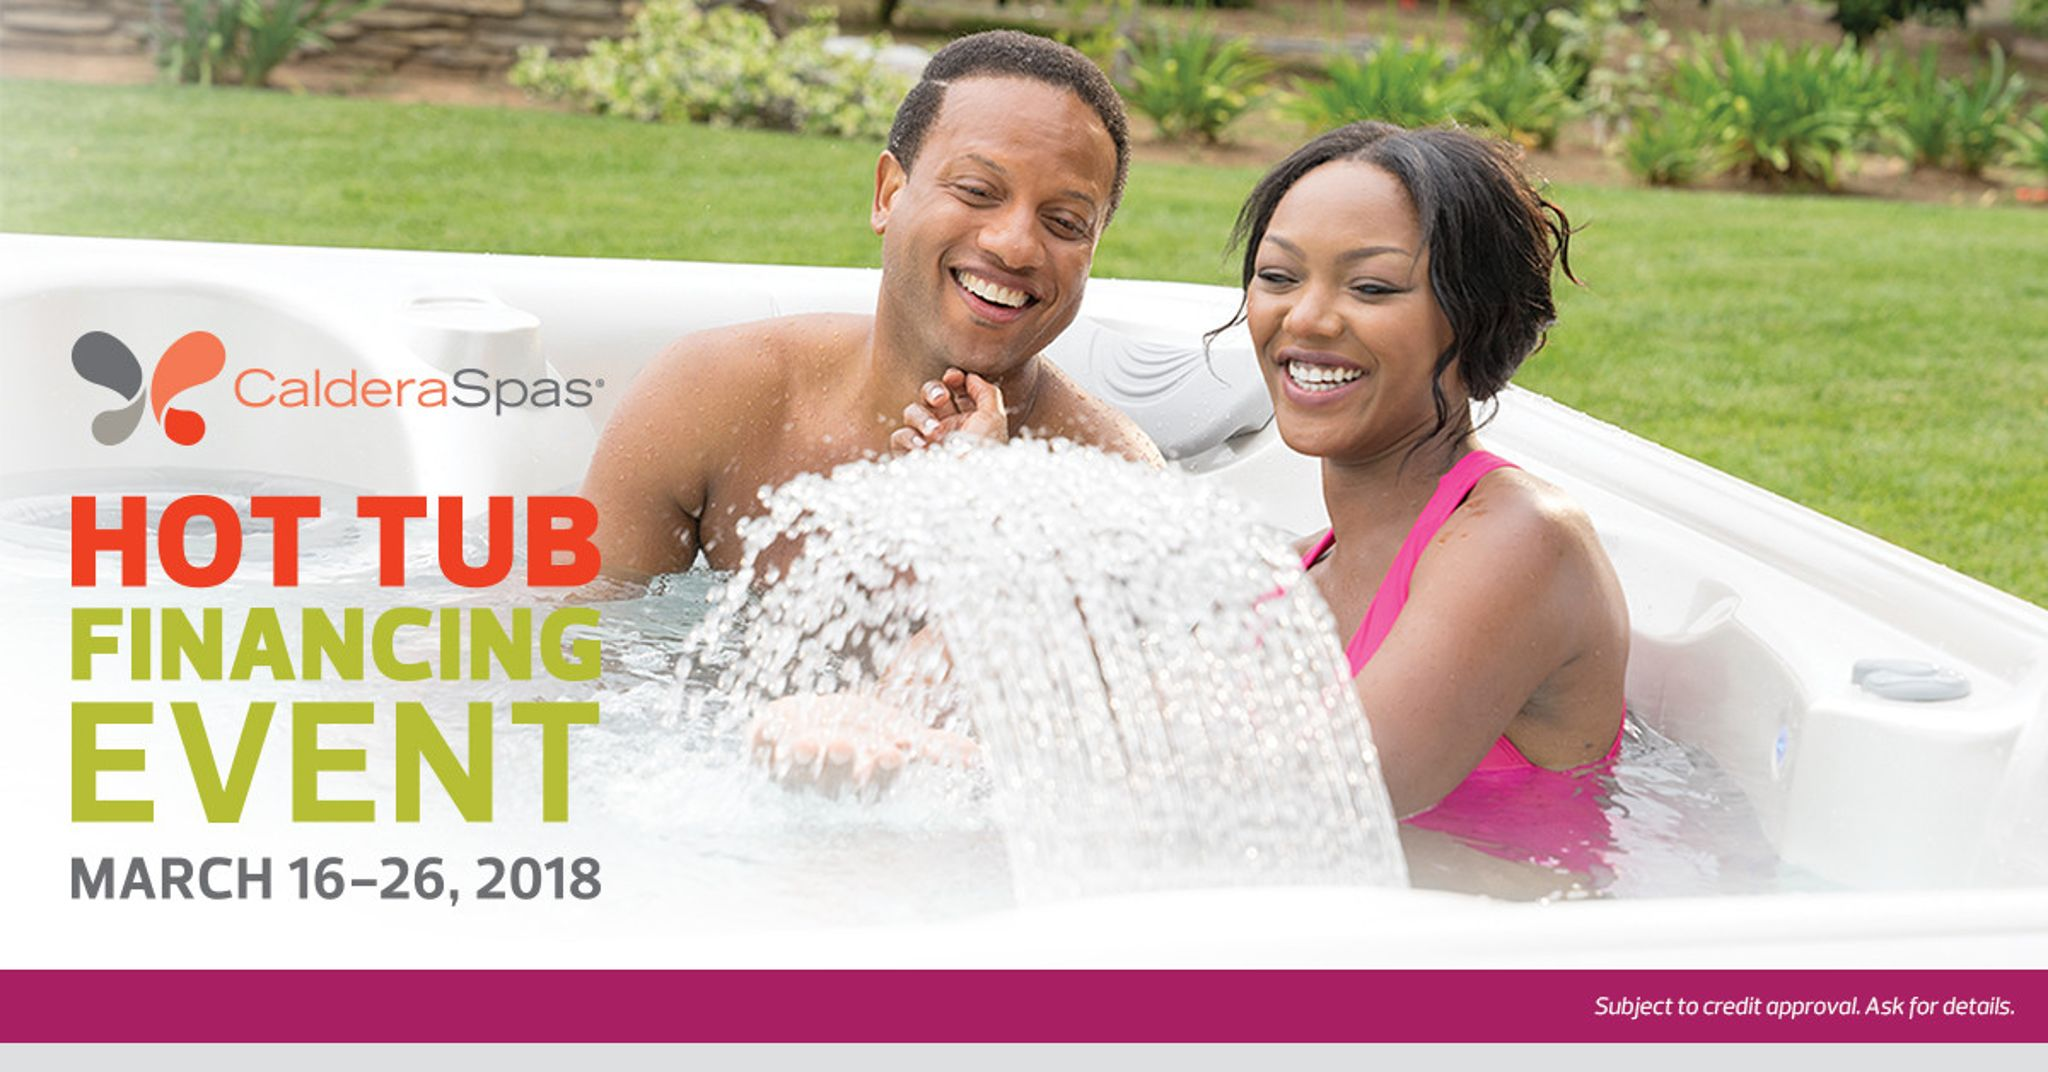 Special Hot Tub Financing Event